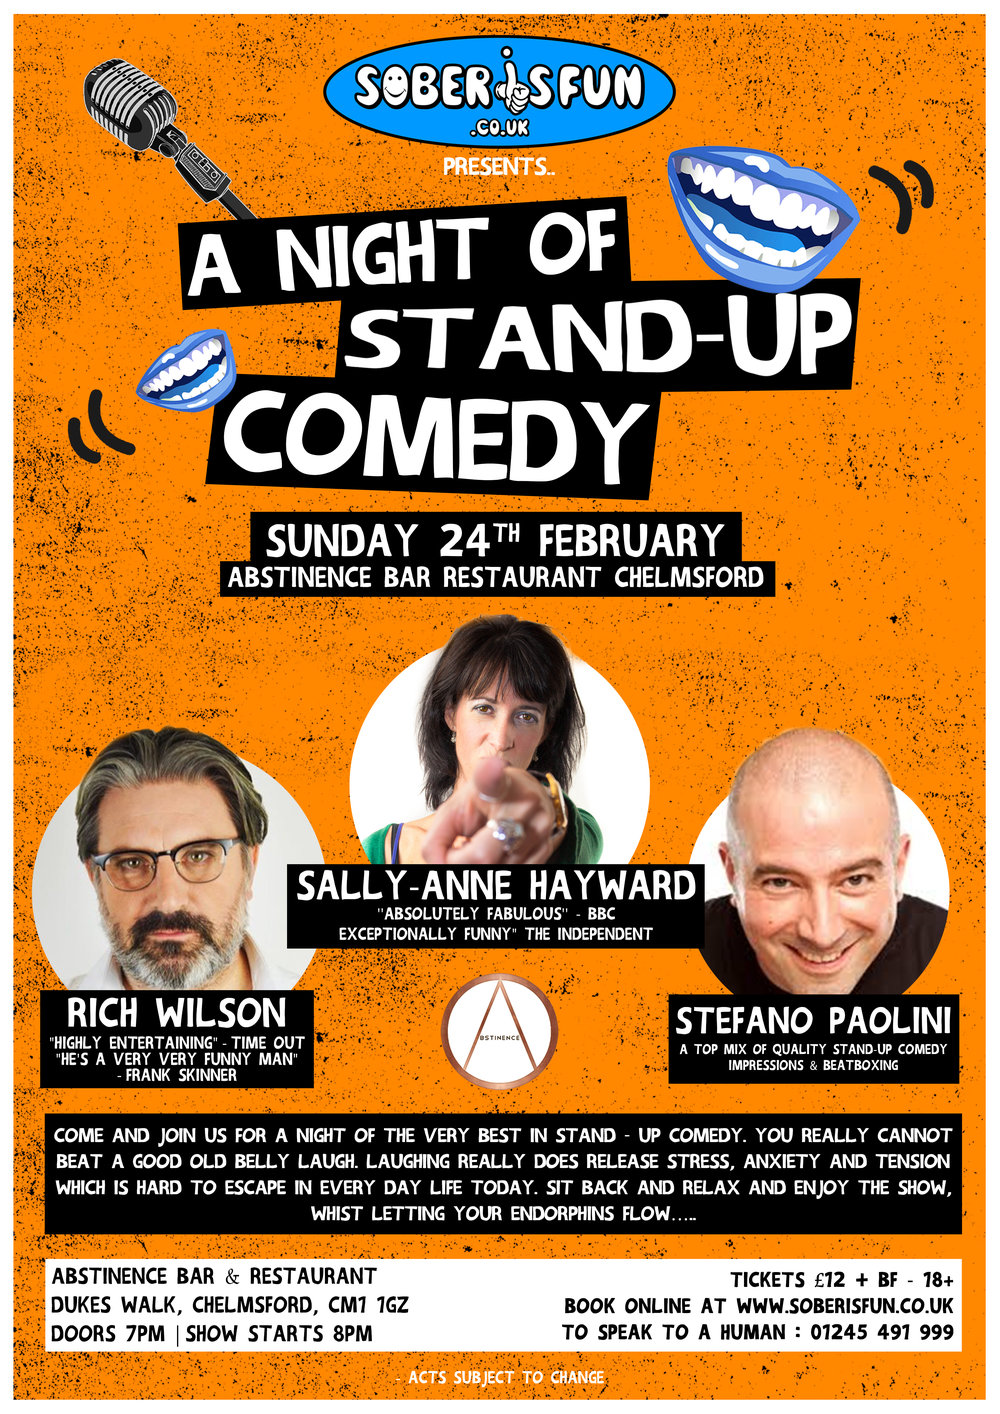 SIFcomedyNight2Poster2orange.jpg